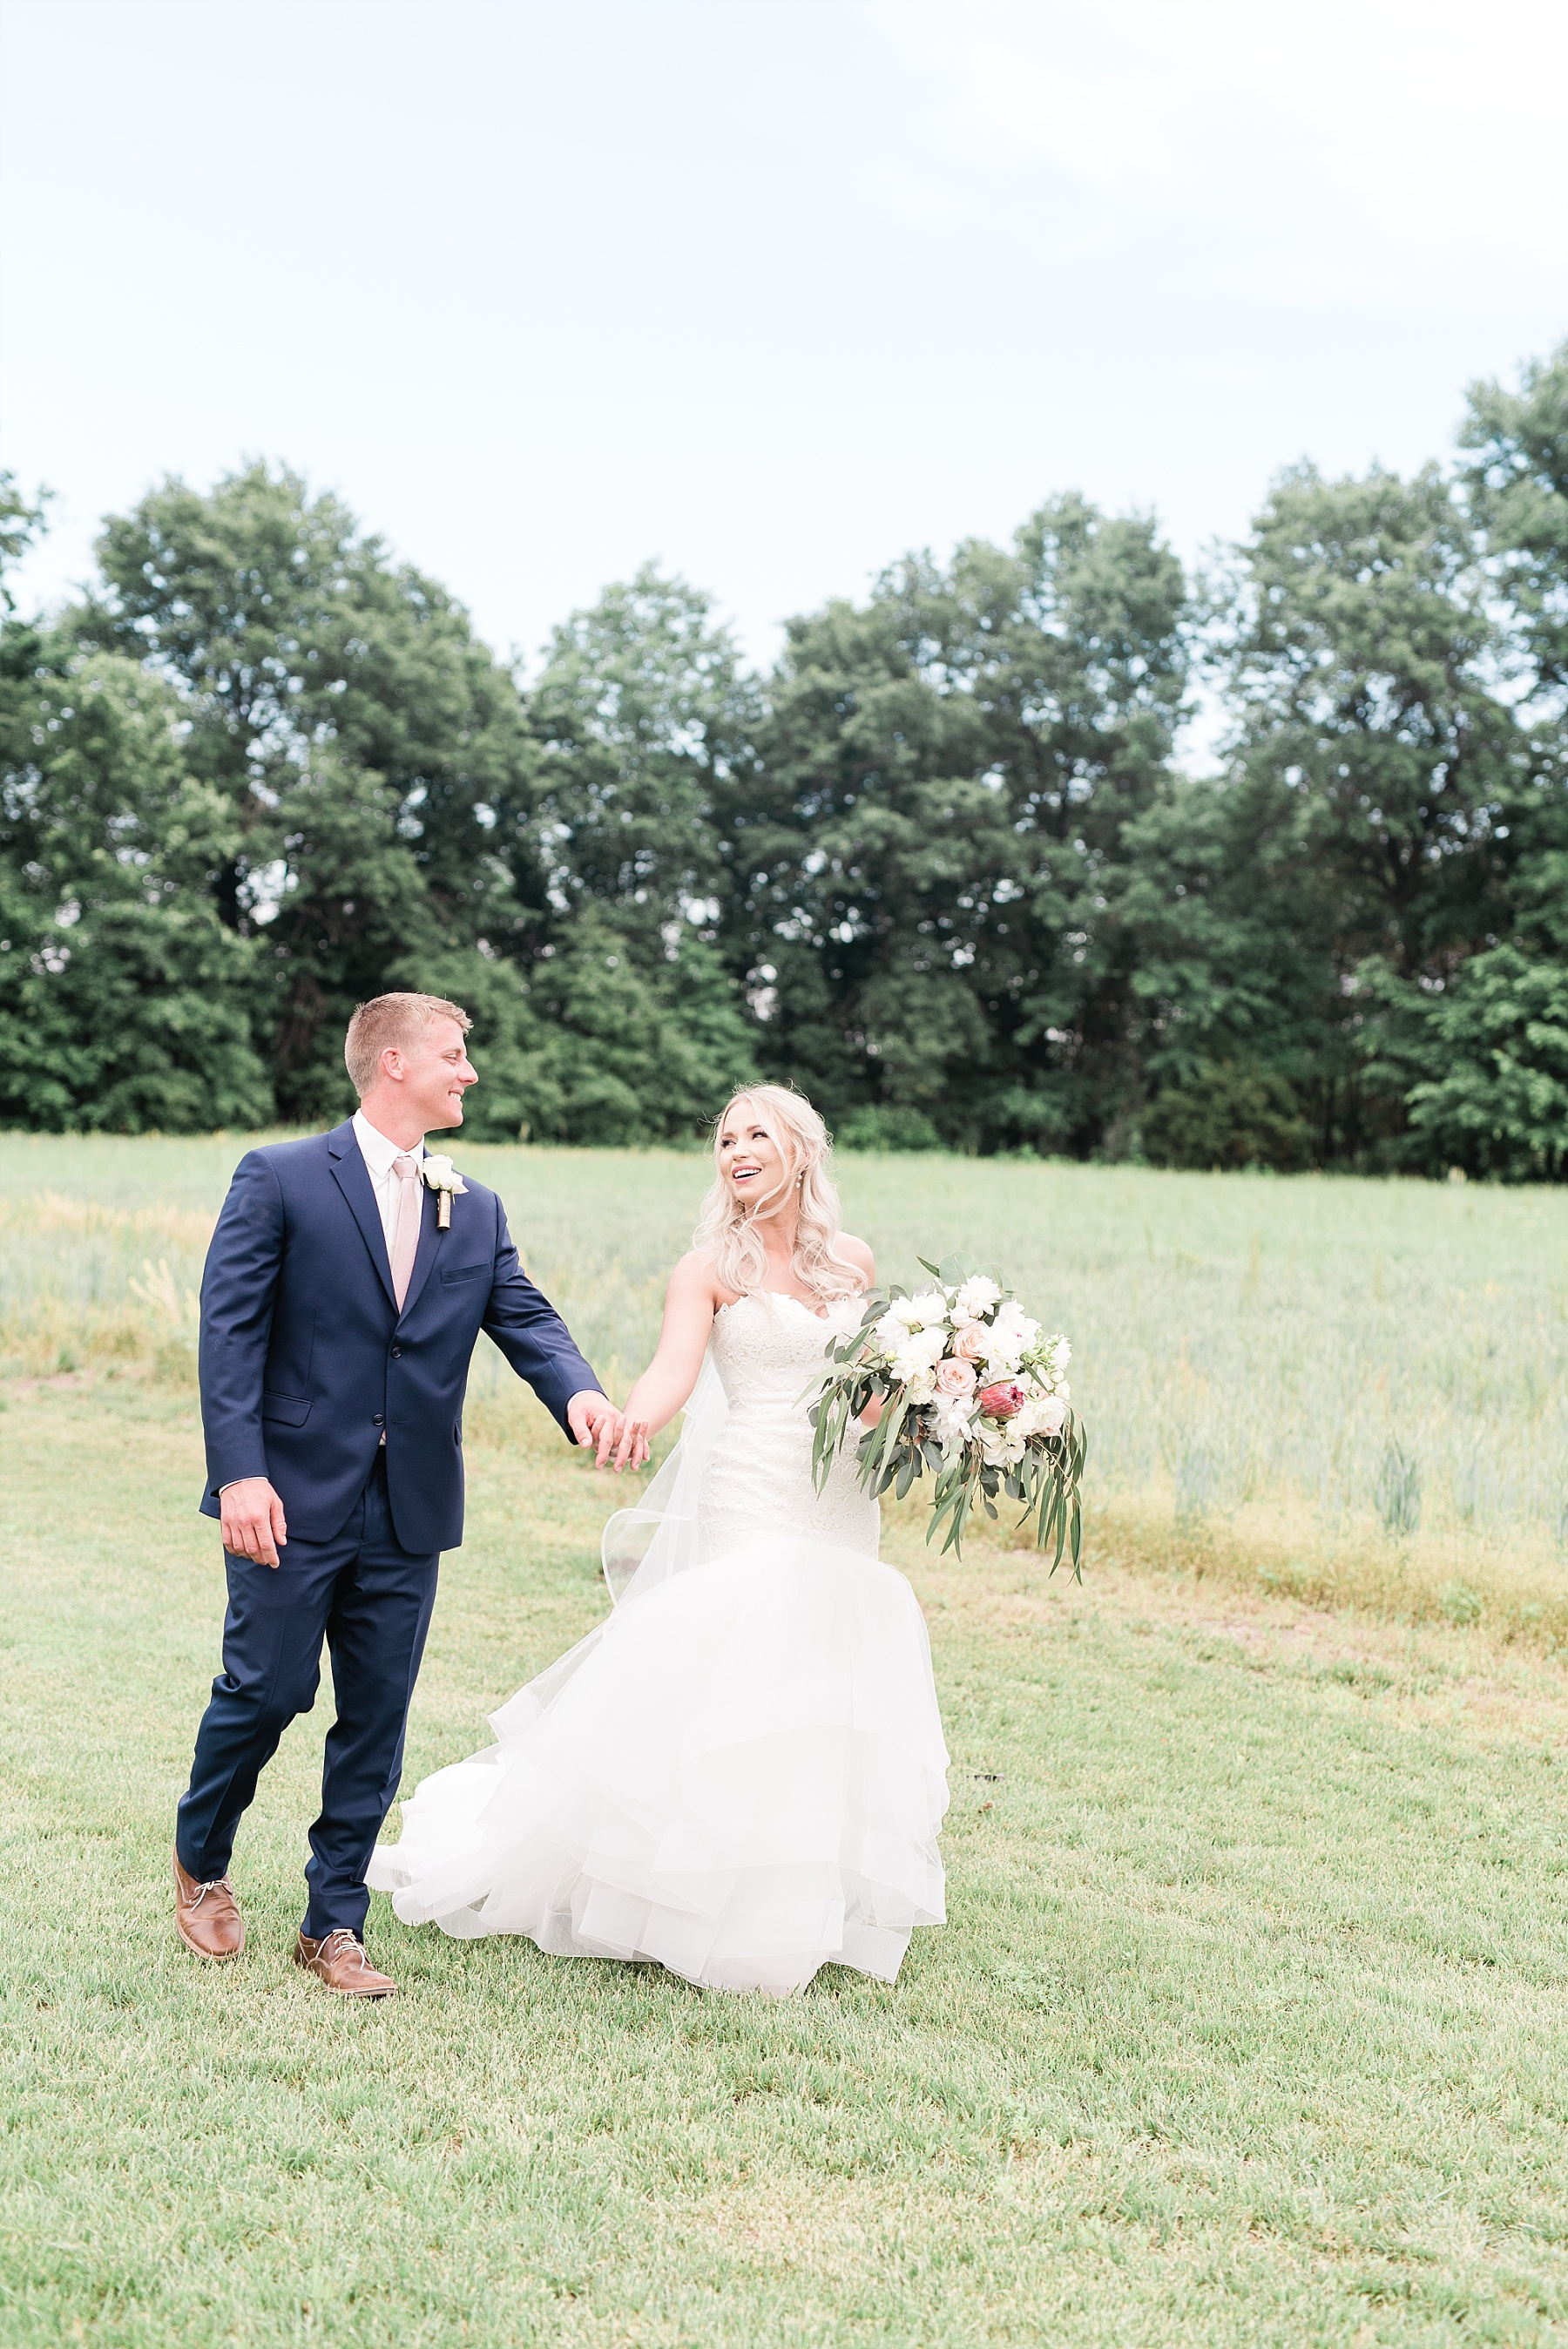 Cody and Mariah Dudenhoeffer Wedding at Emerson Fields Venue by Kelsi Kliethermes Photography_0069.jpg